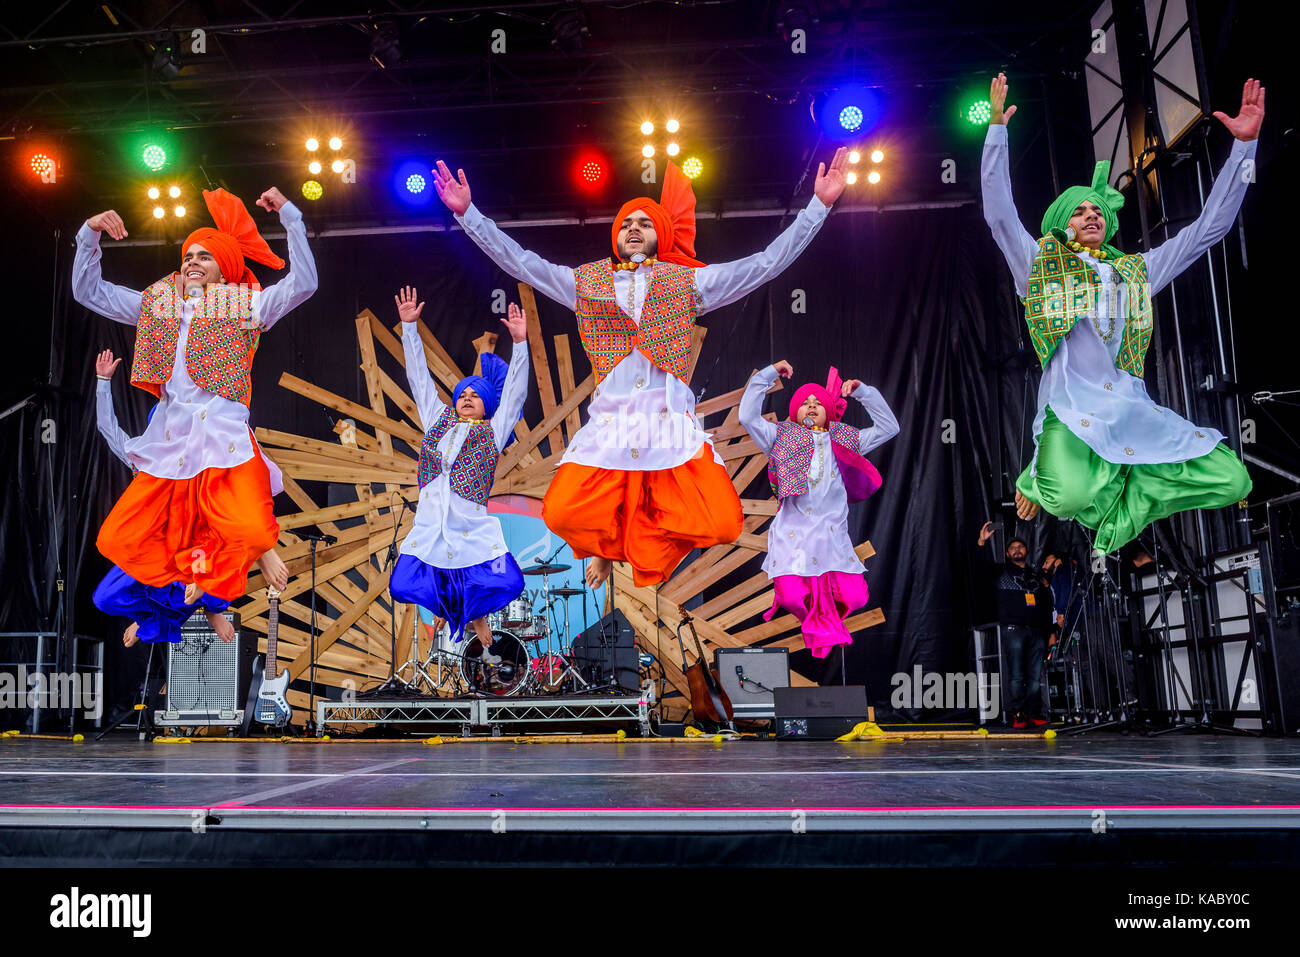 Punjabi Dance Stock Photos & Punjabi Dance Stock Images - Alamy